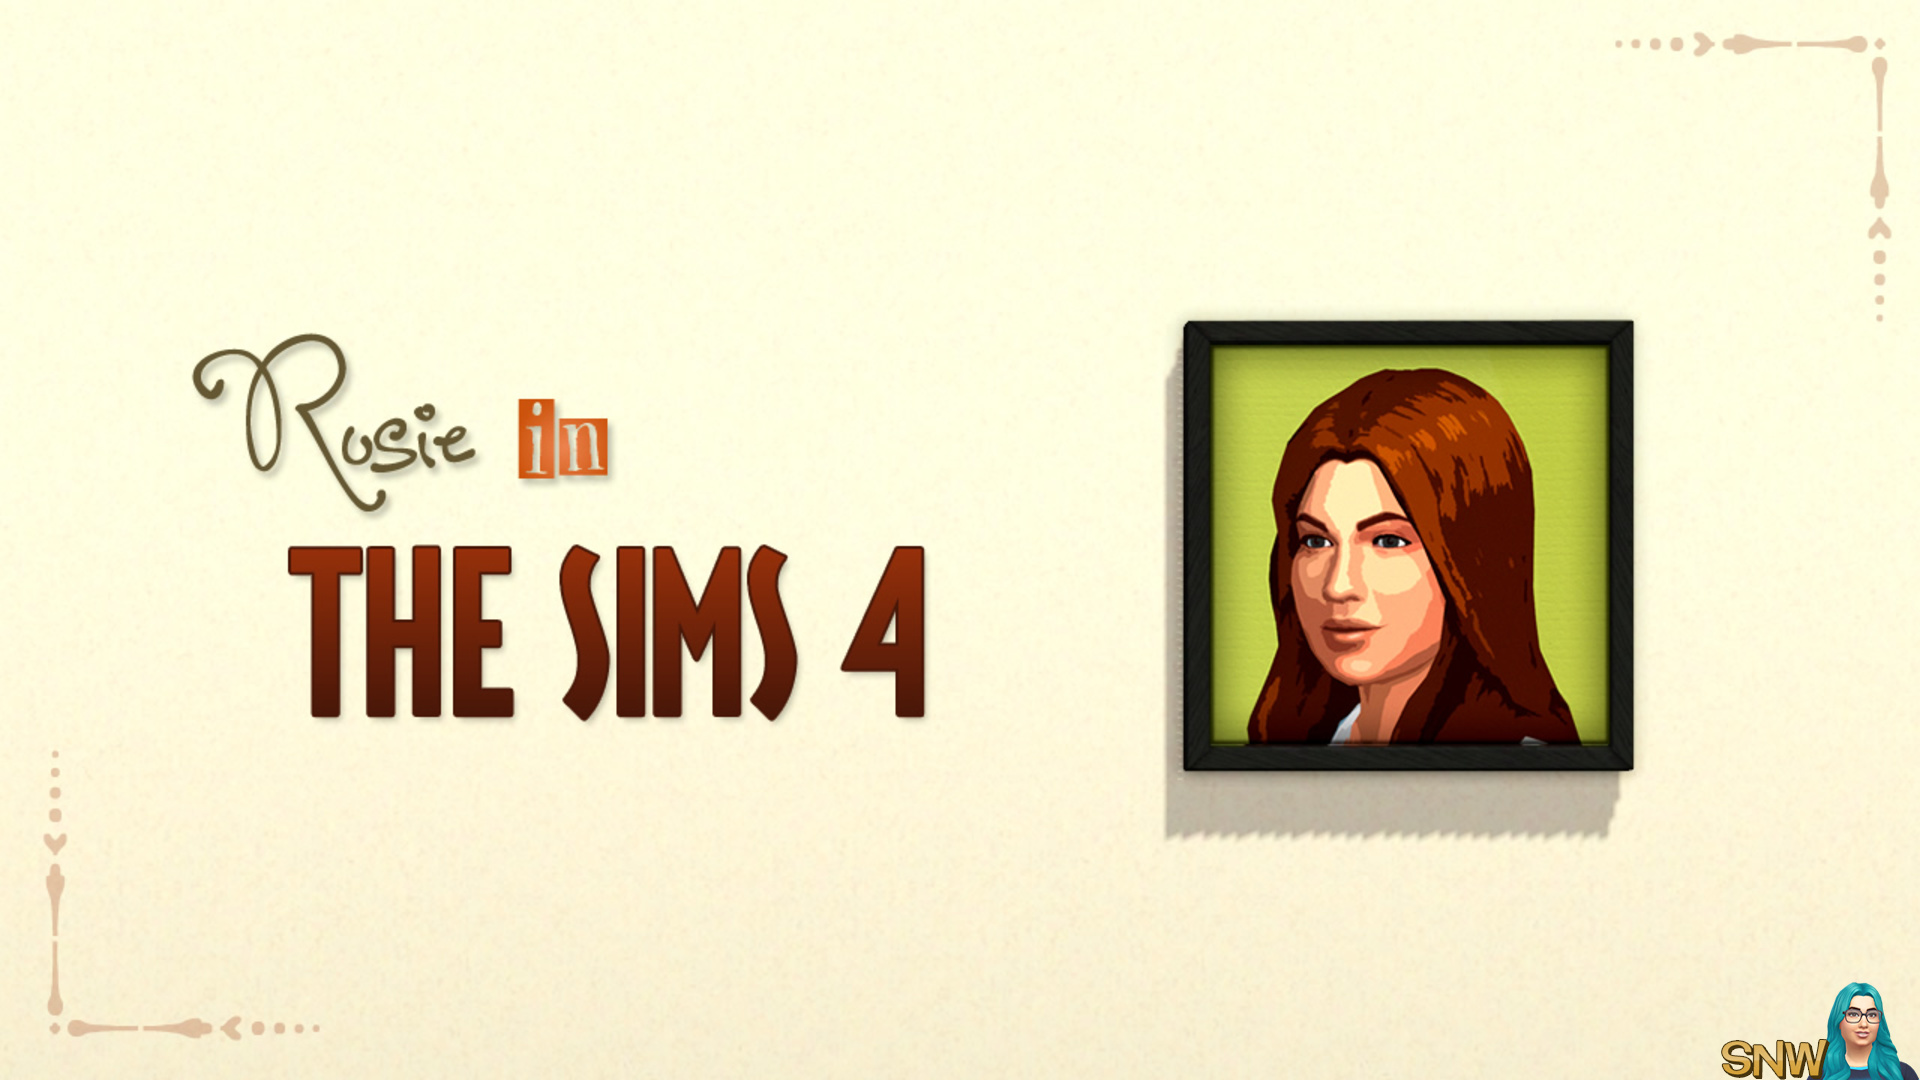 Rosie in The Sims 4 painting